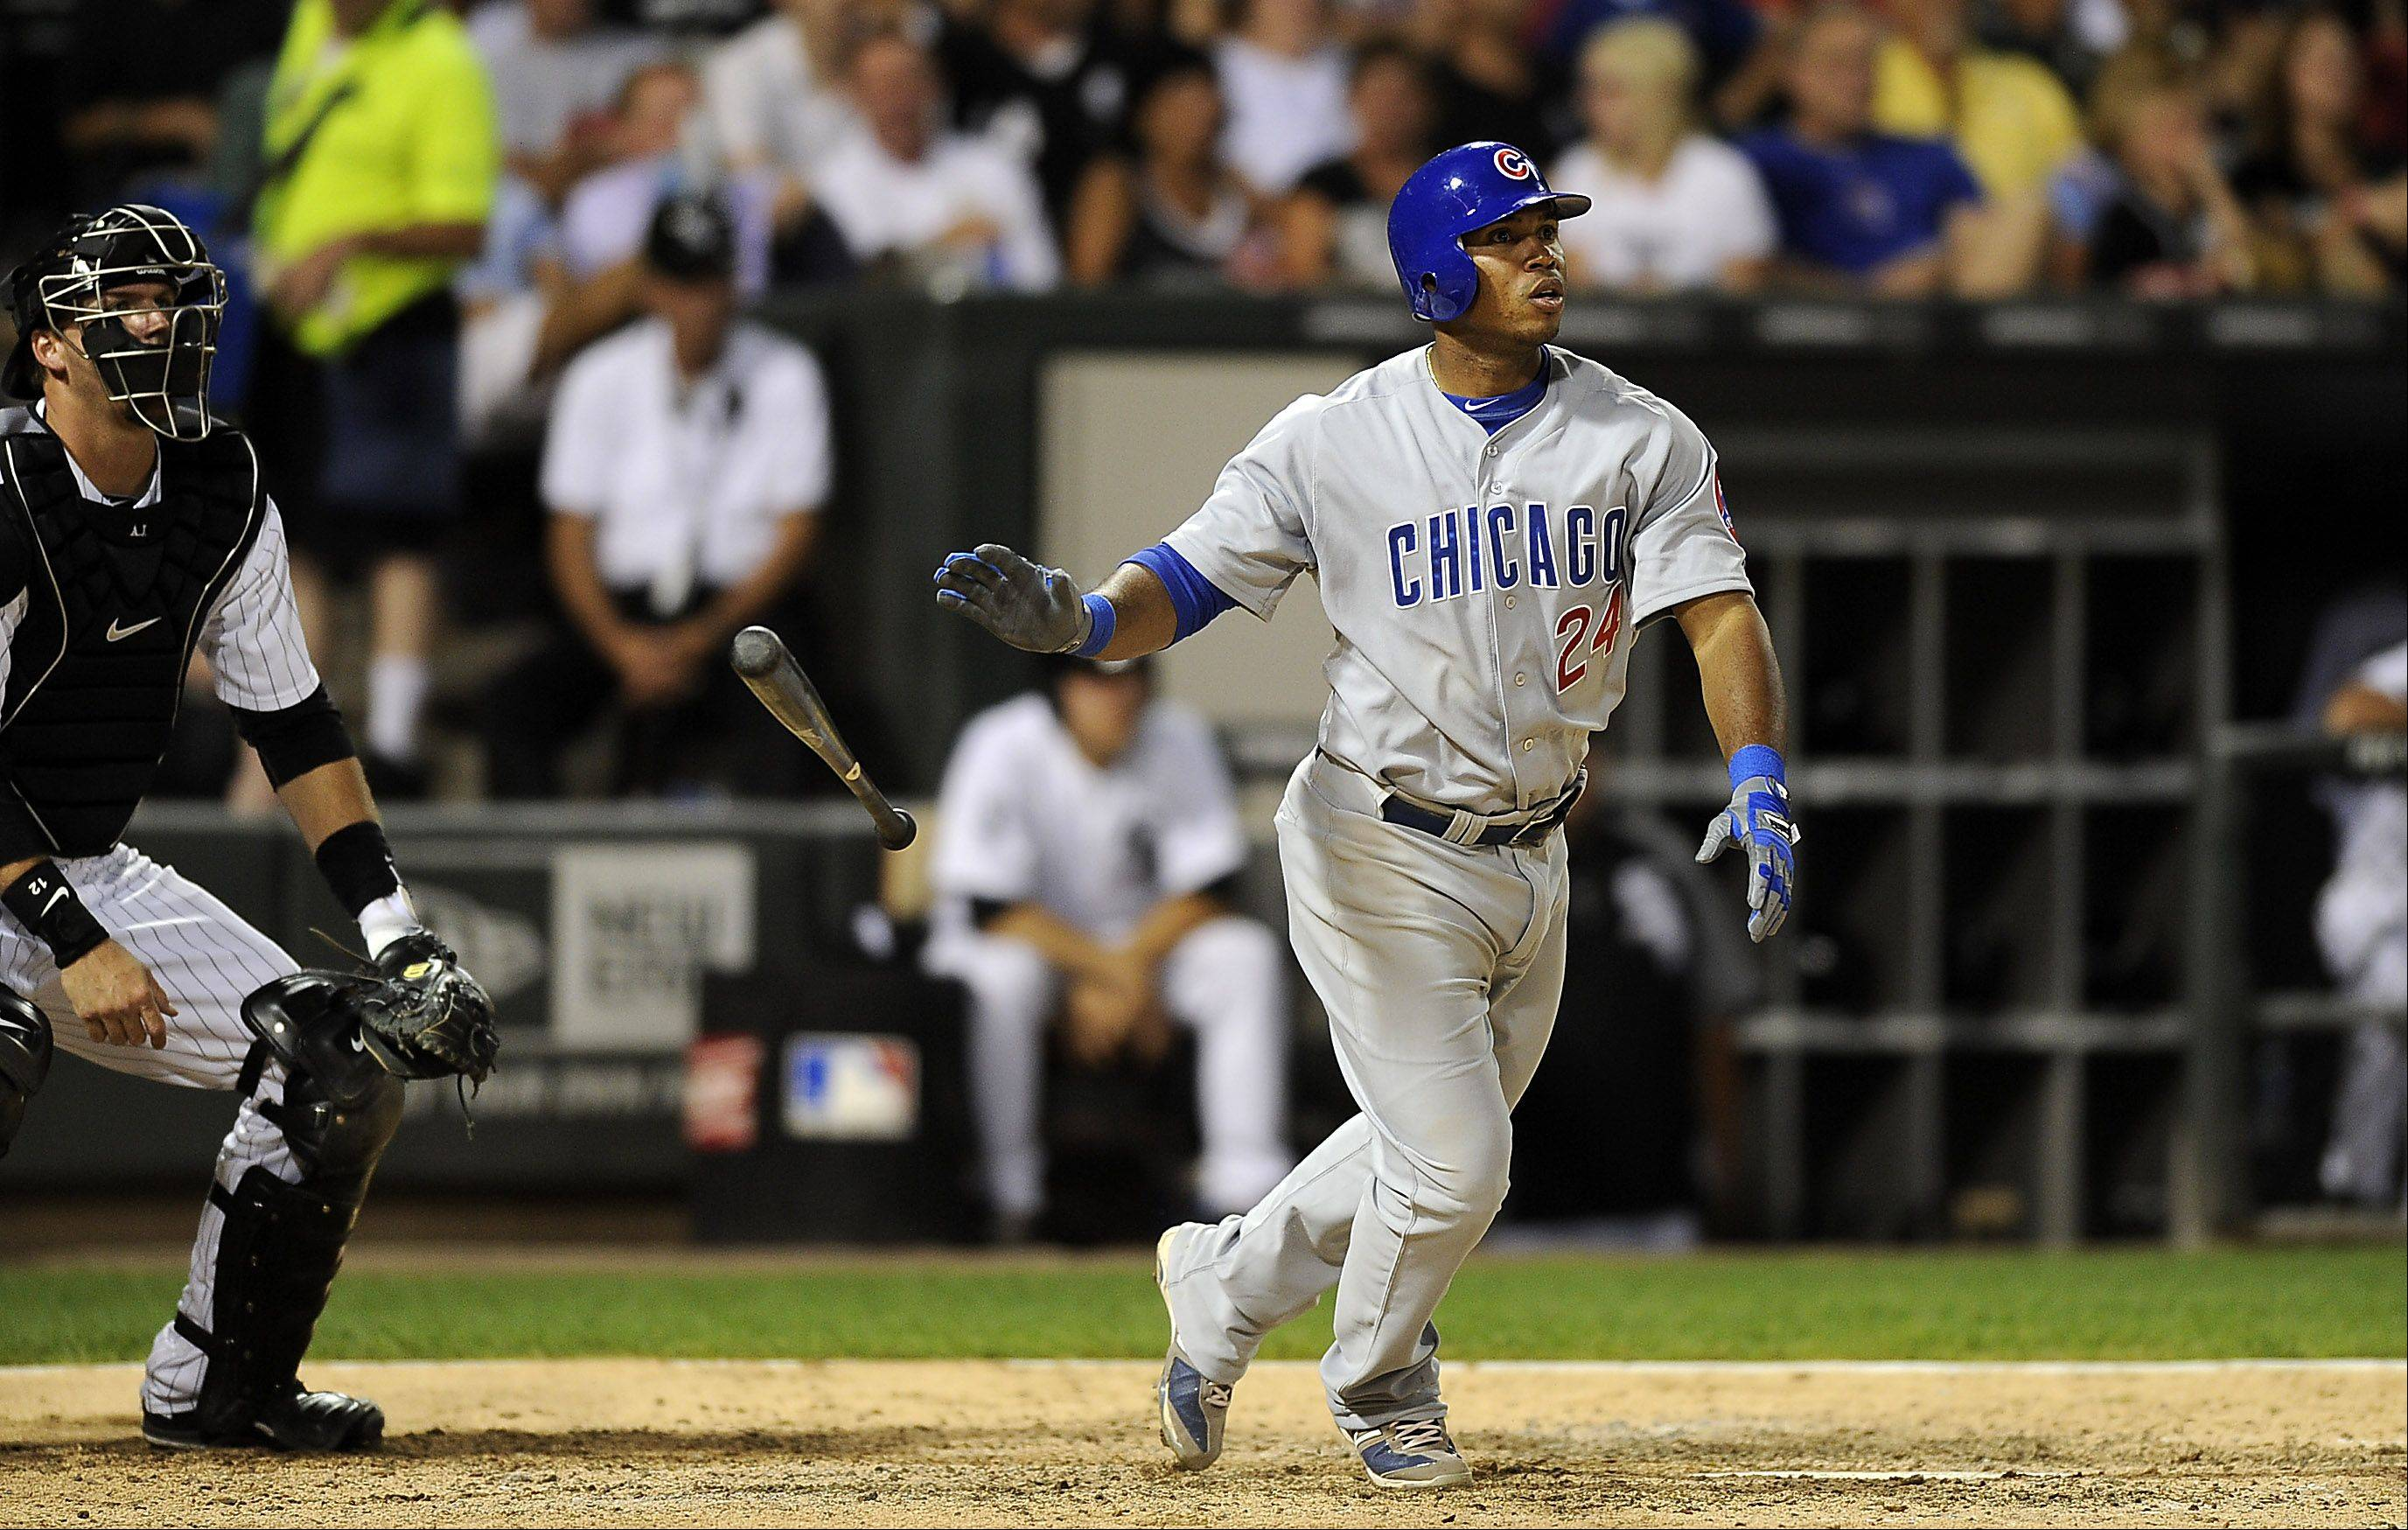 Mark Welsh/mwelsh@dailyherald.com ¬ Chicago Cubs Luis Valbuena hits a seventh inning homerun to right field driving in multiple rbi runs at the crosstown classic, White Sox vs the Chicago Cubs on Monday.